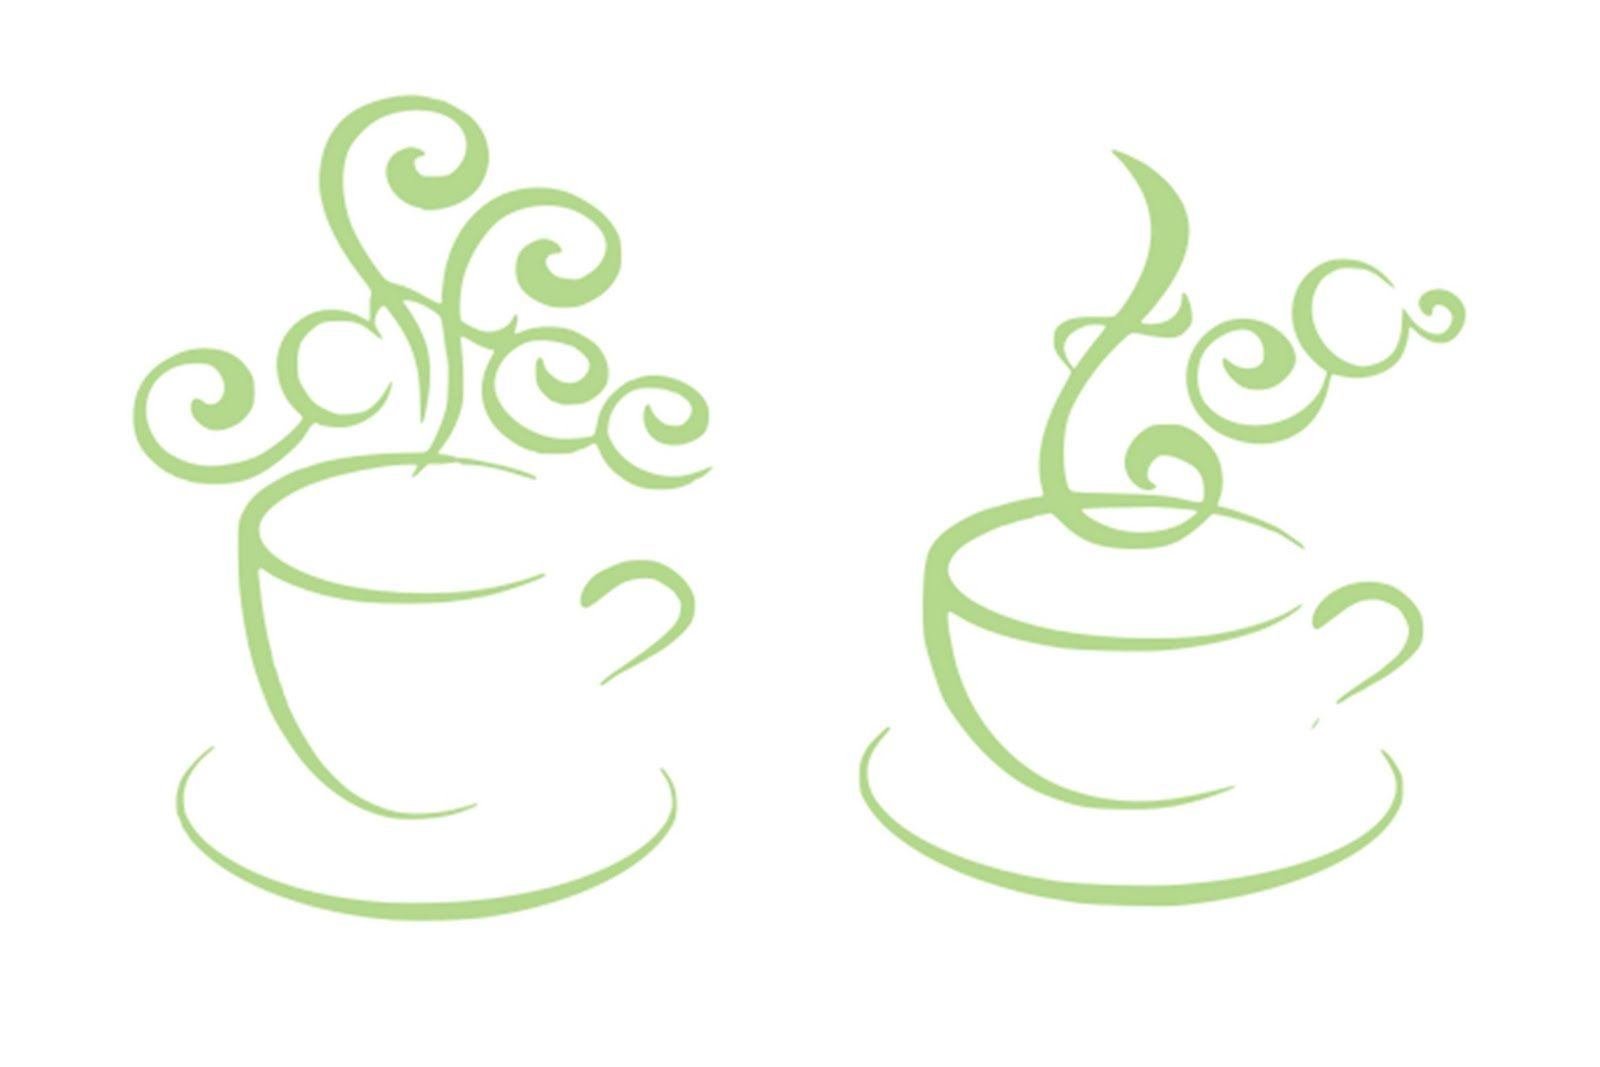 Coffee clip art today. Cafe clipart airport